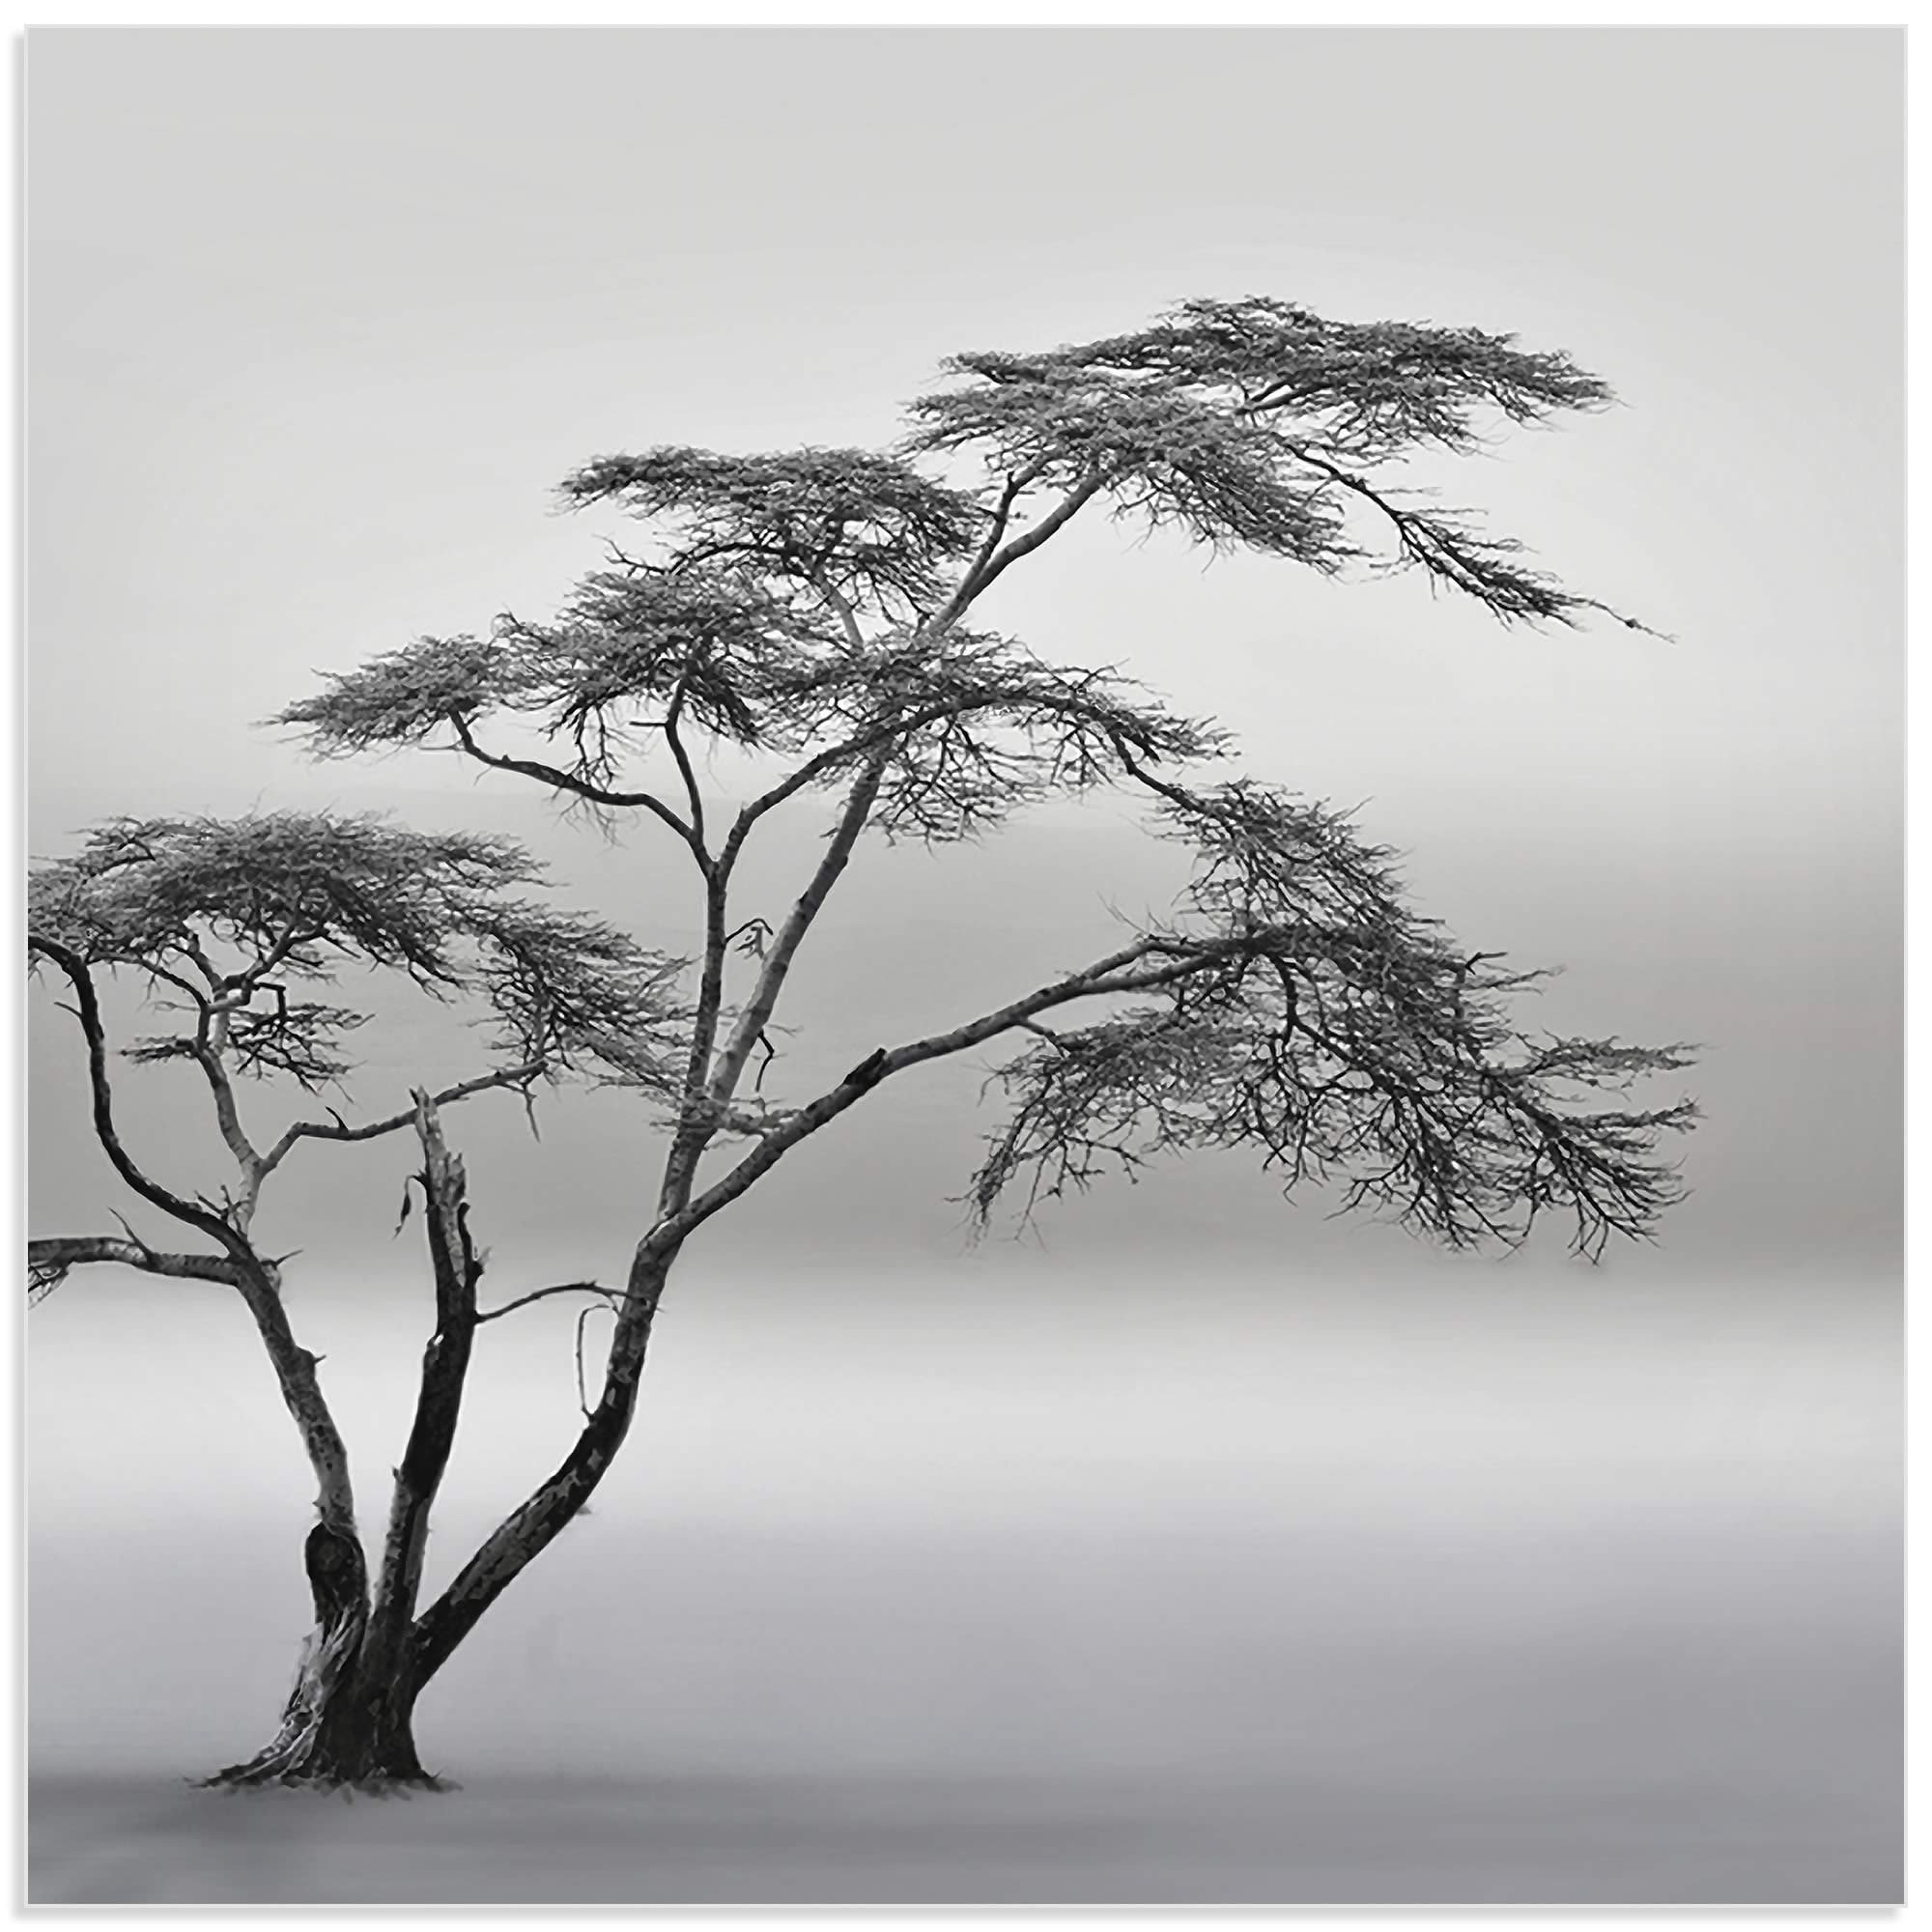 A Very Long Story by Piet Flour - Minimalist Tree Art on Metal or Acrylic - Alternate View 2